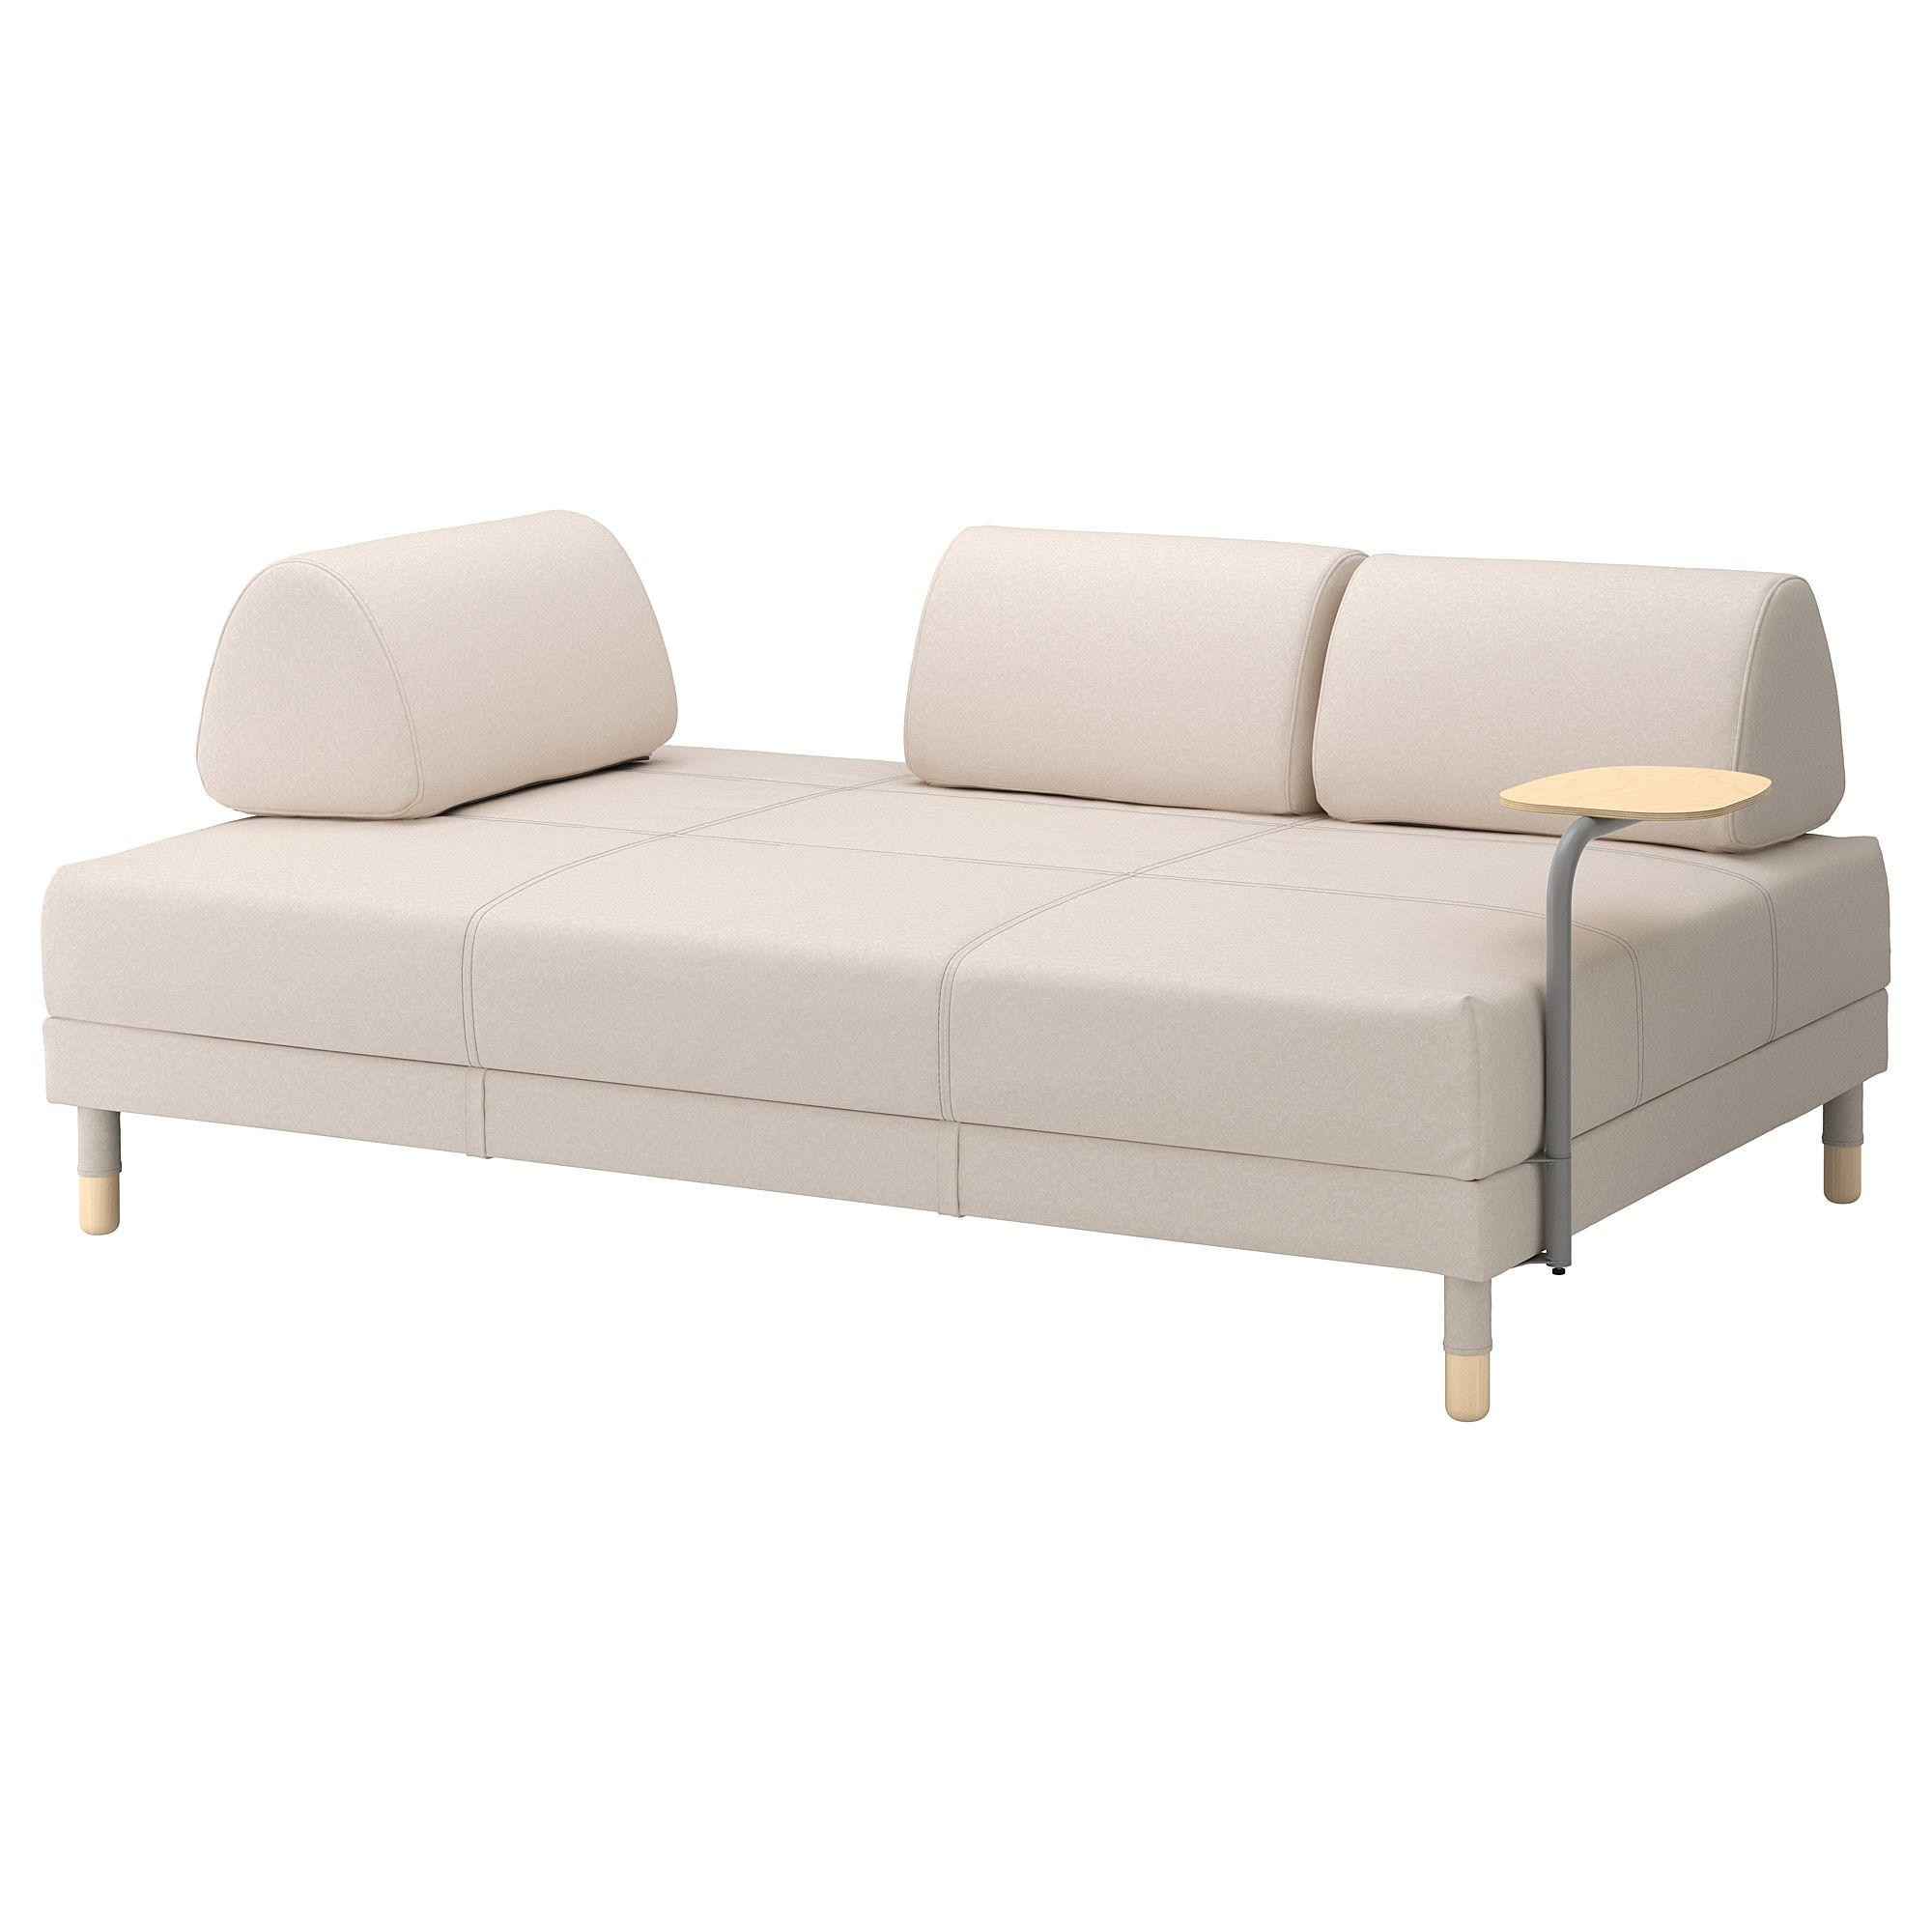 Us Furniture And Home Furnishings Sofas For Small Spaces Best